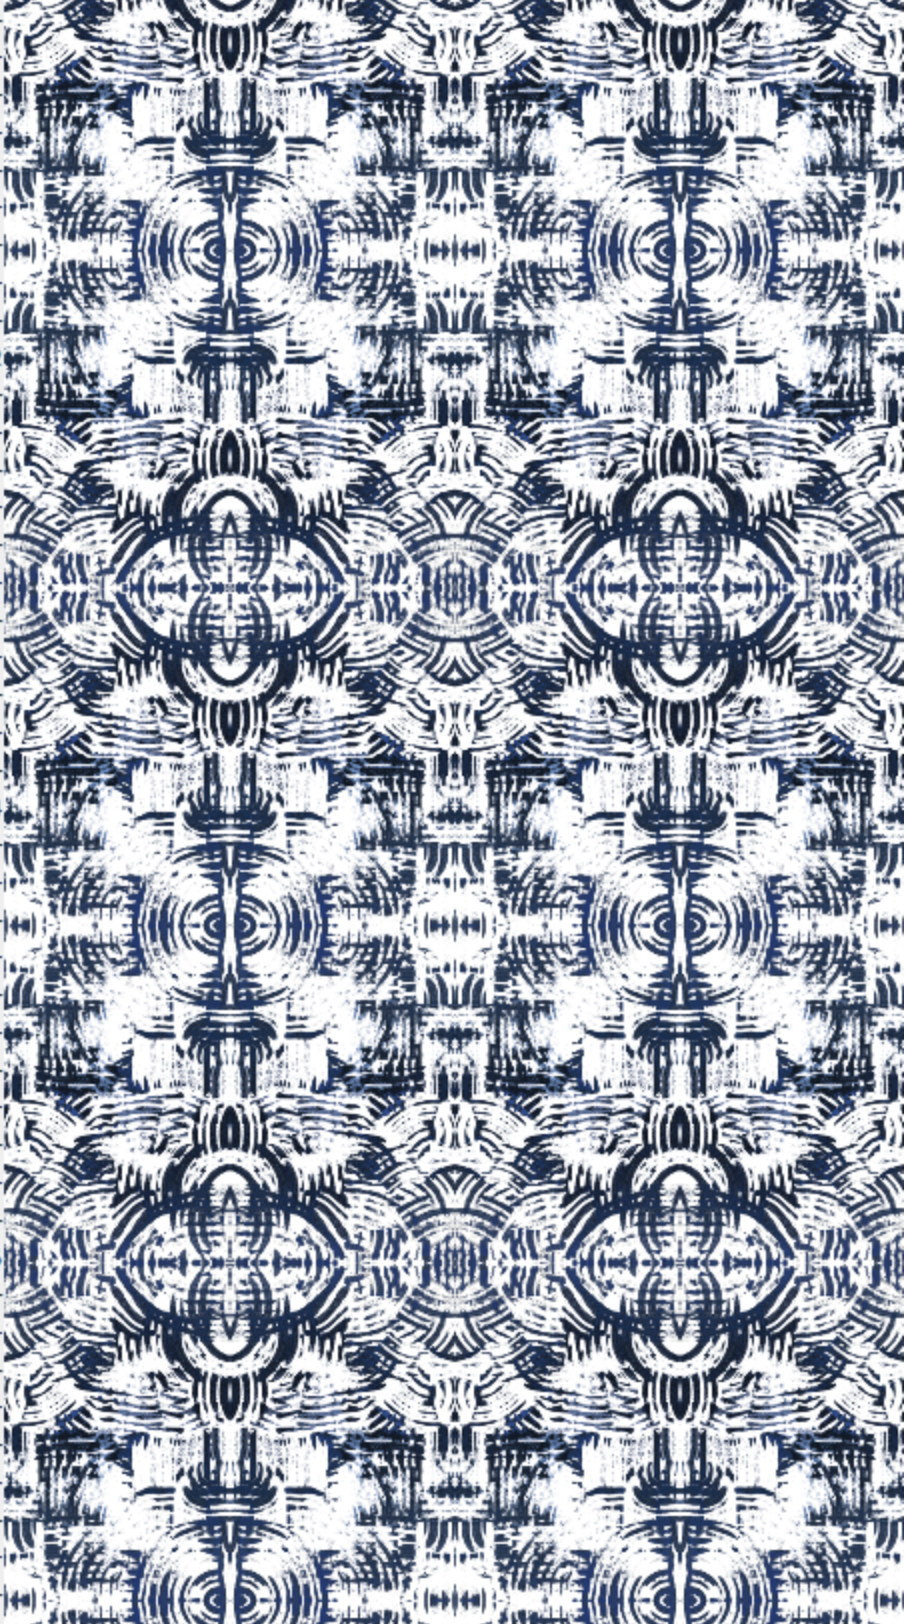 navy white wallpaper, navy paint stroke wallpaper, artist wallpaper, peel and stick wallpaper navy white,